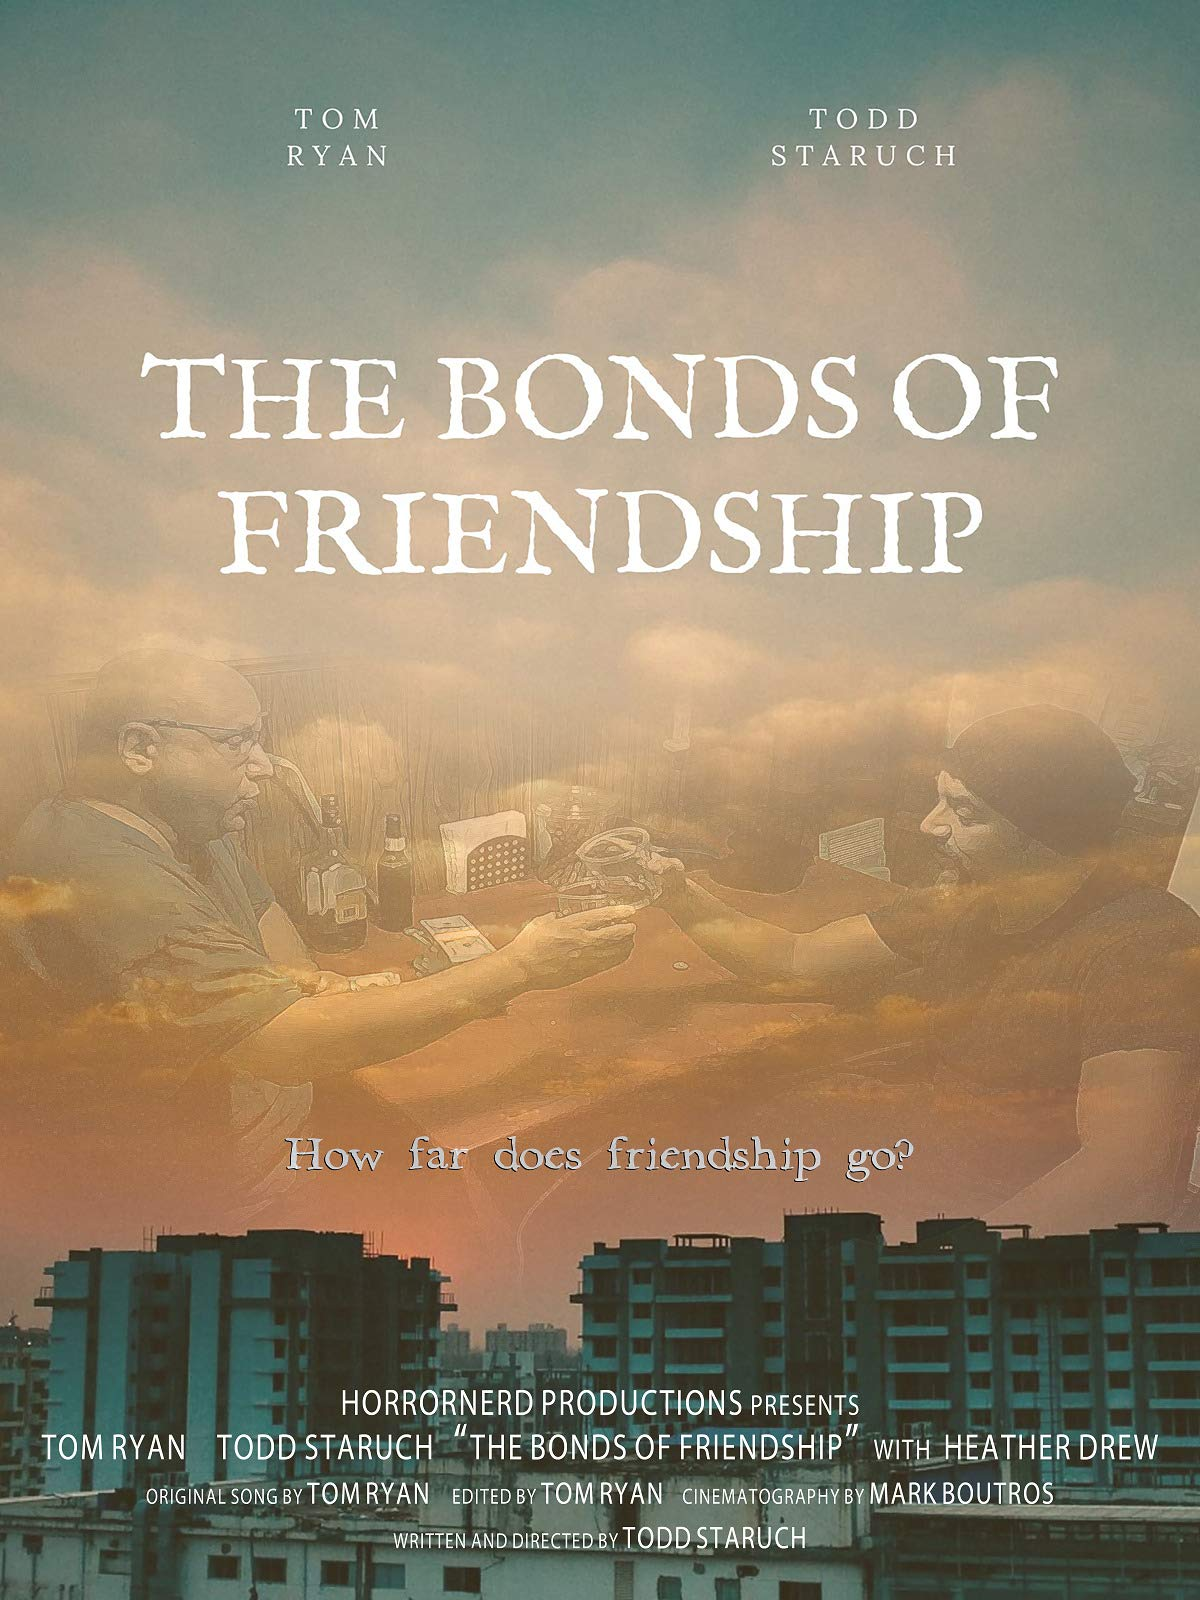 The Bonds of Friendship